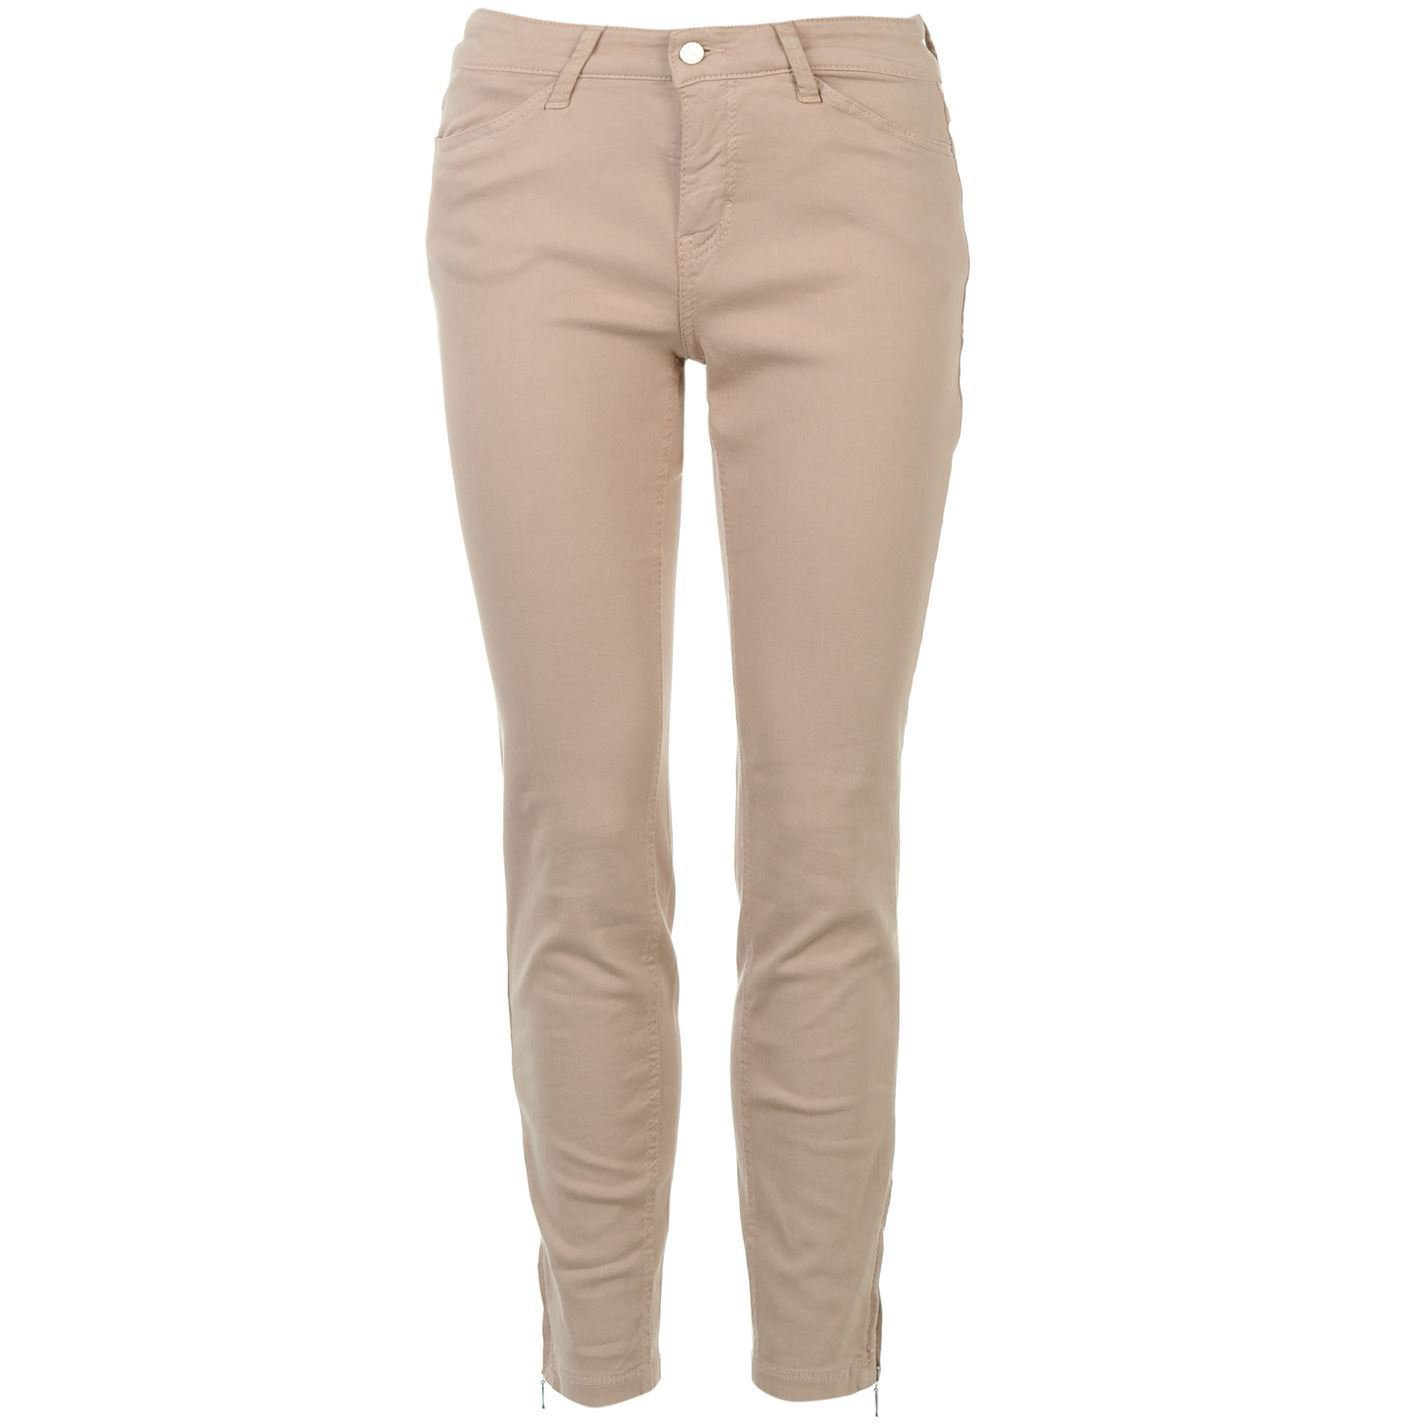 Mac Womens Jeans Dream Sum Ladies Casual Everyday Denim Pants Trousers Bottoms